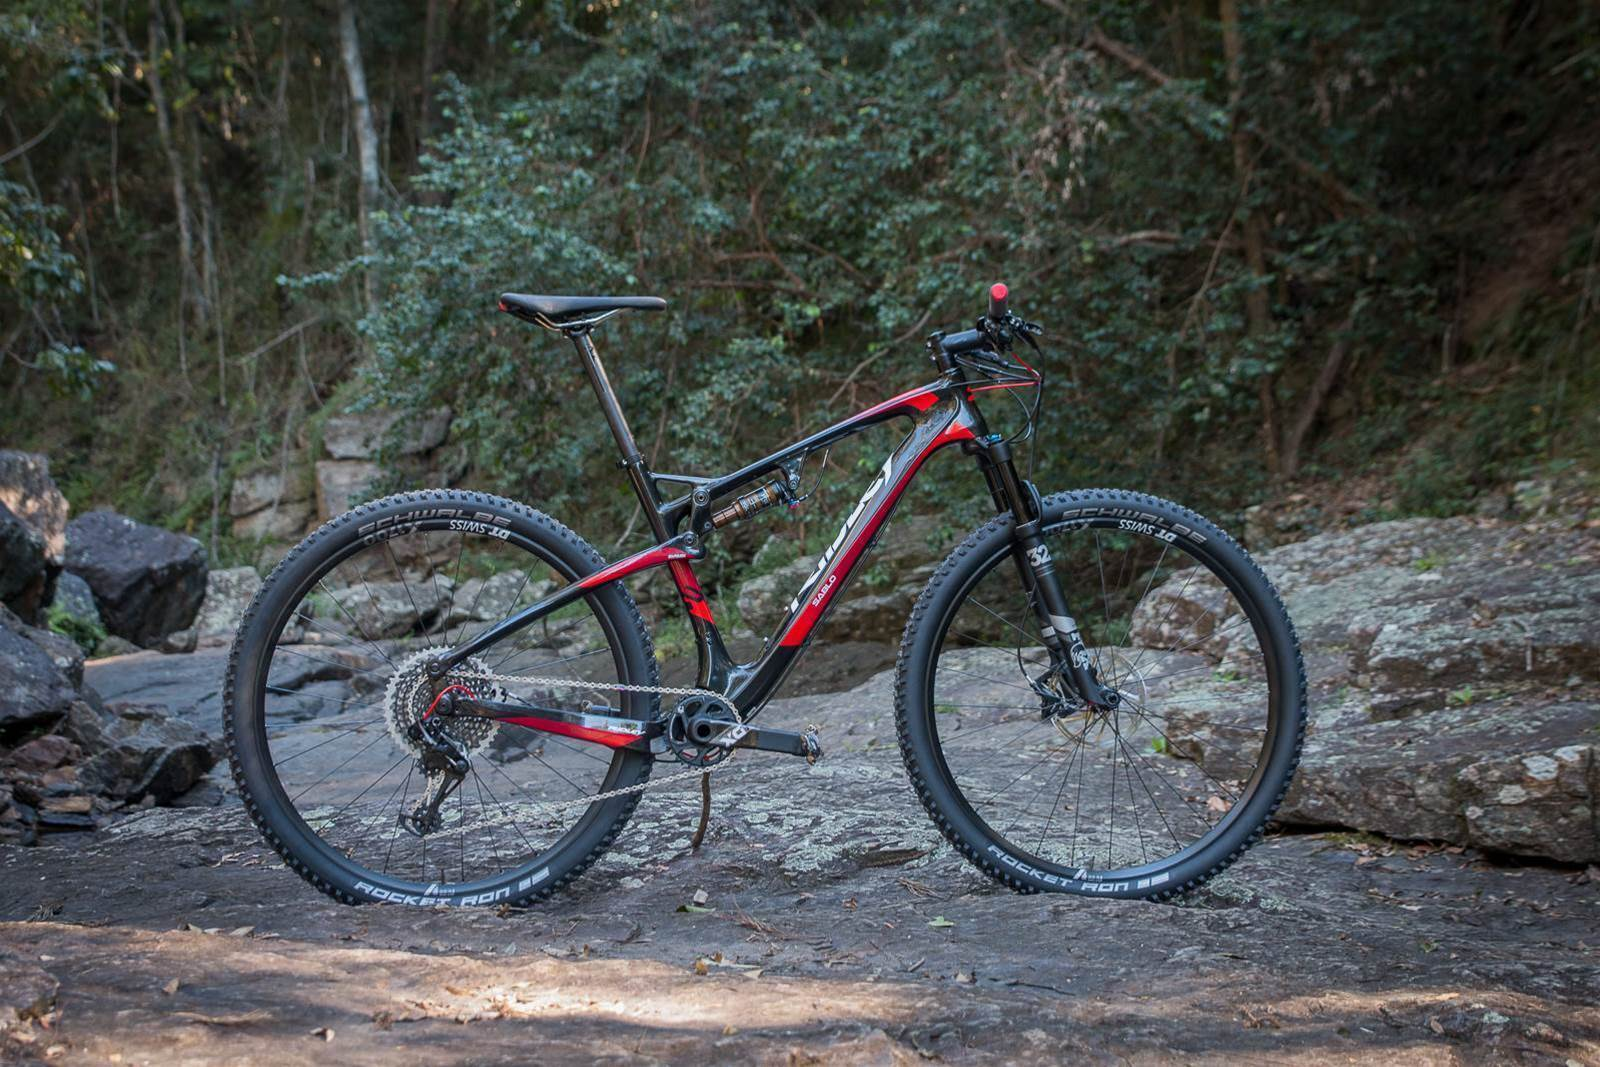 FIRST LOOK: The Ridley Sablo XC mountain bike